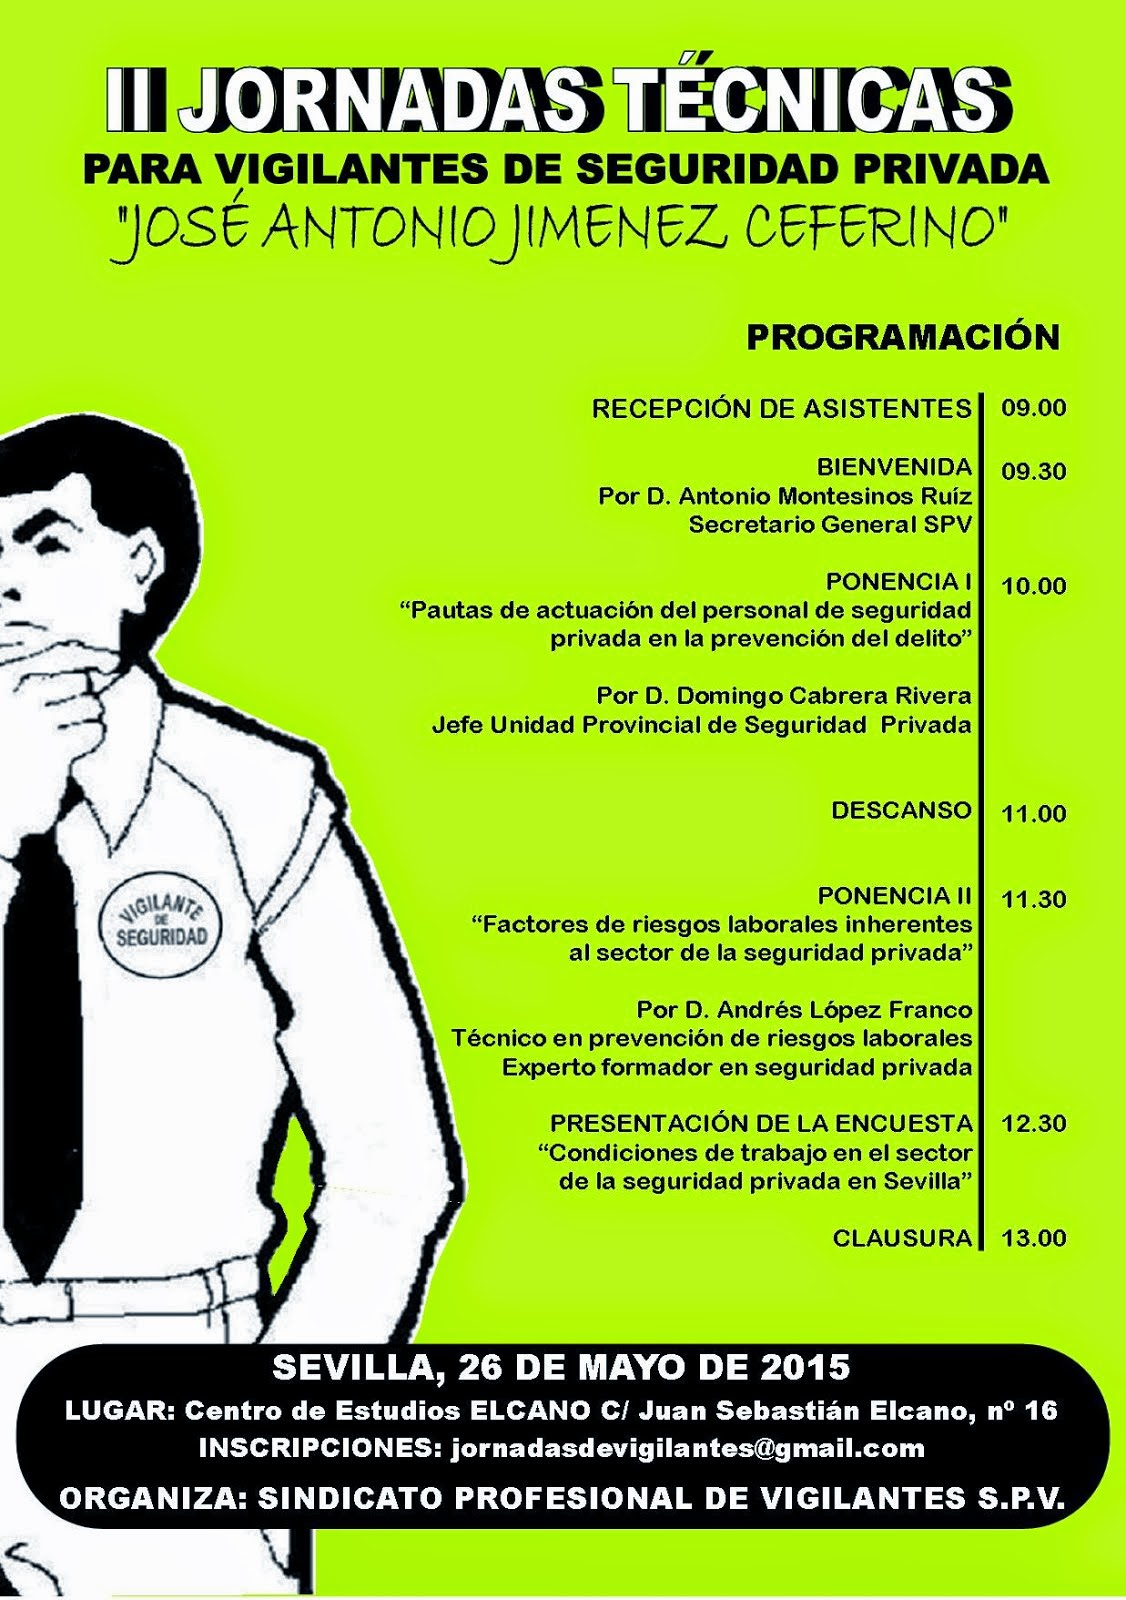 II Jornadas Técnicas para vigilantes de seguridad